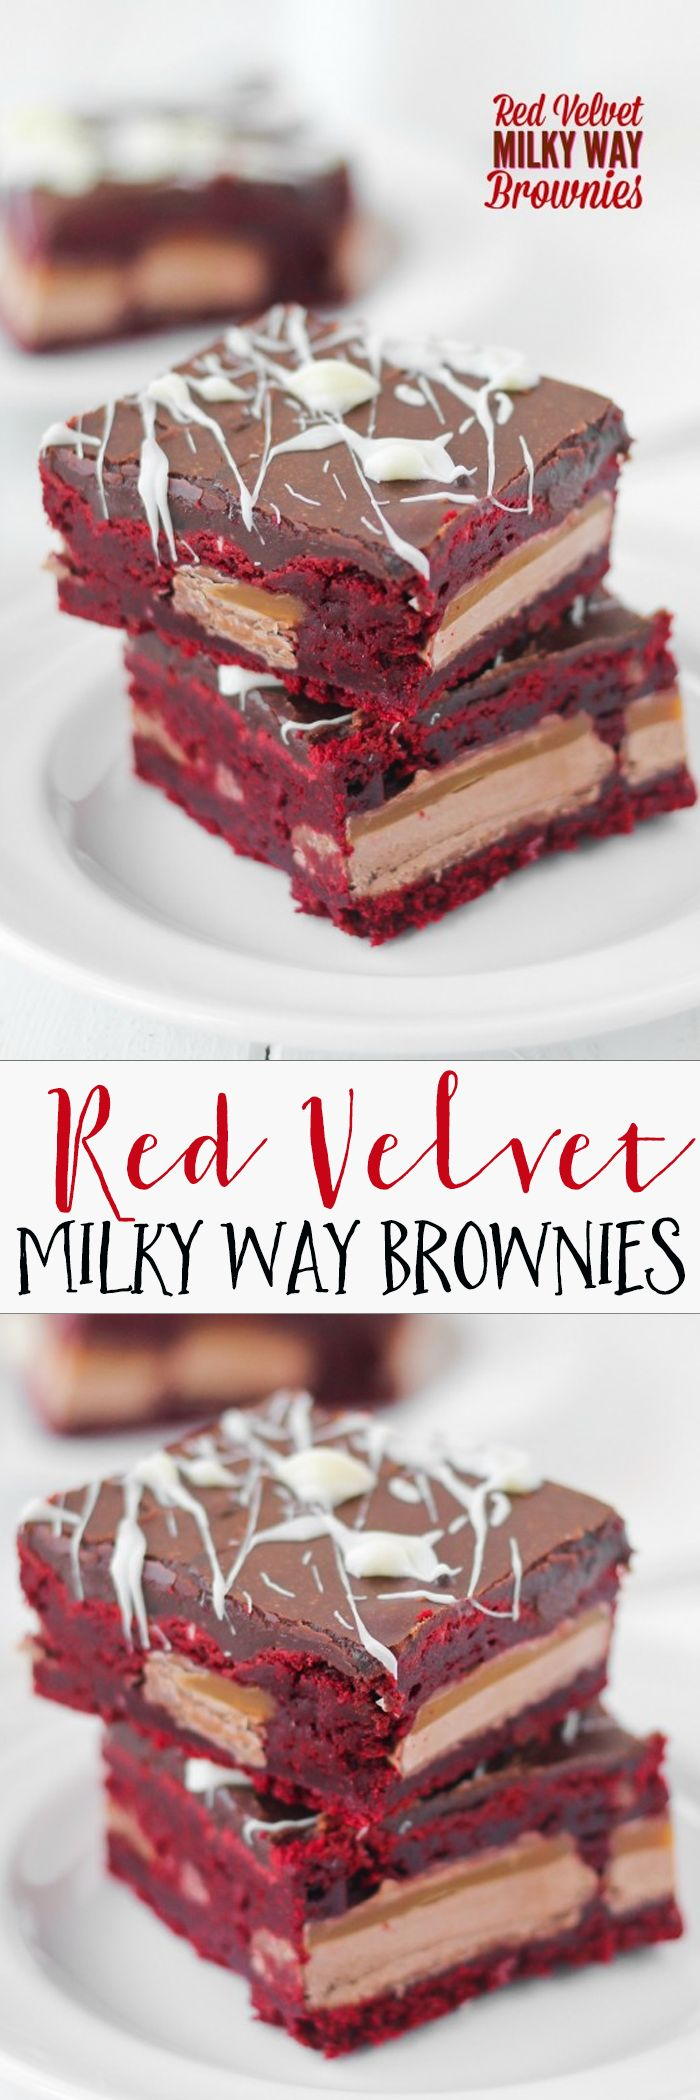 Red Velvet Milky Way Brownies -- dense, fudgy, with a gooey center and fudge frosting. Pin for Valentine's Day dessert.